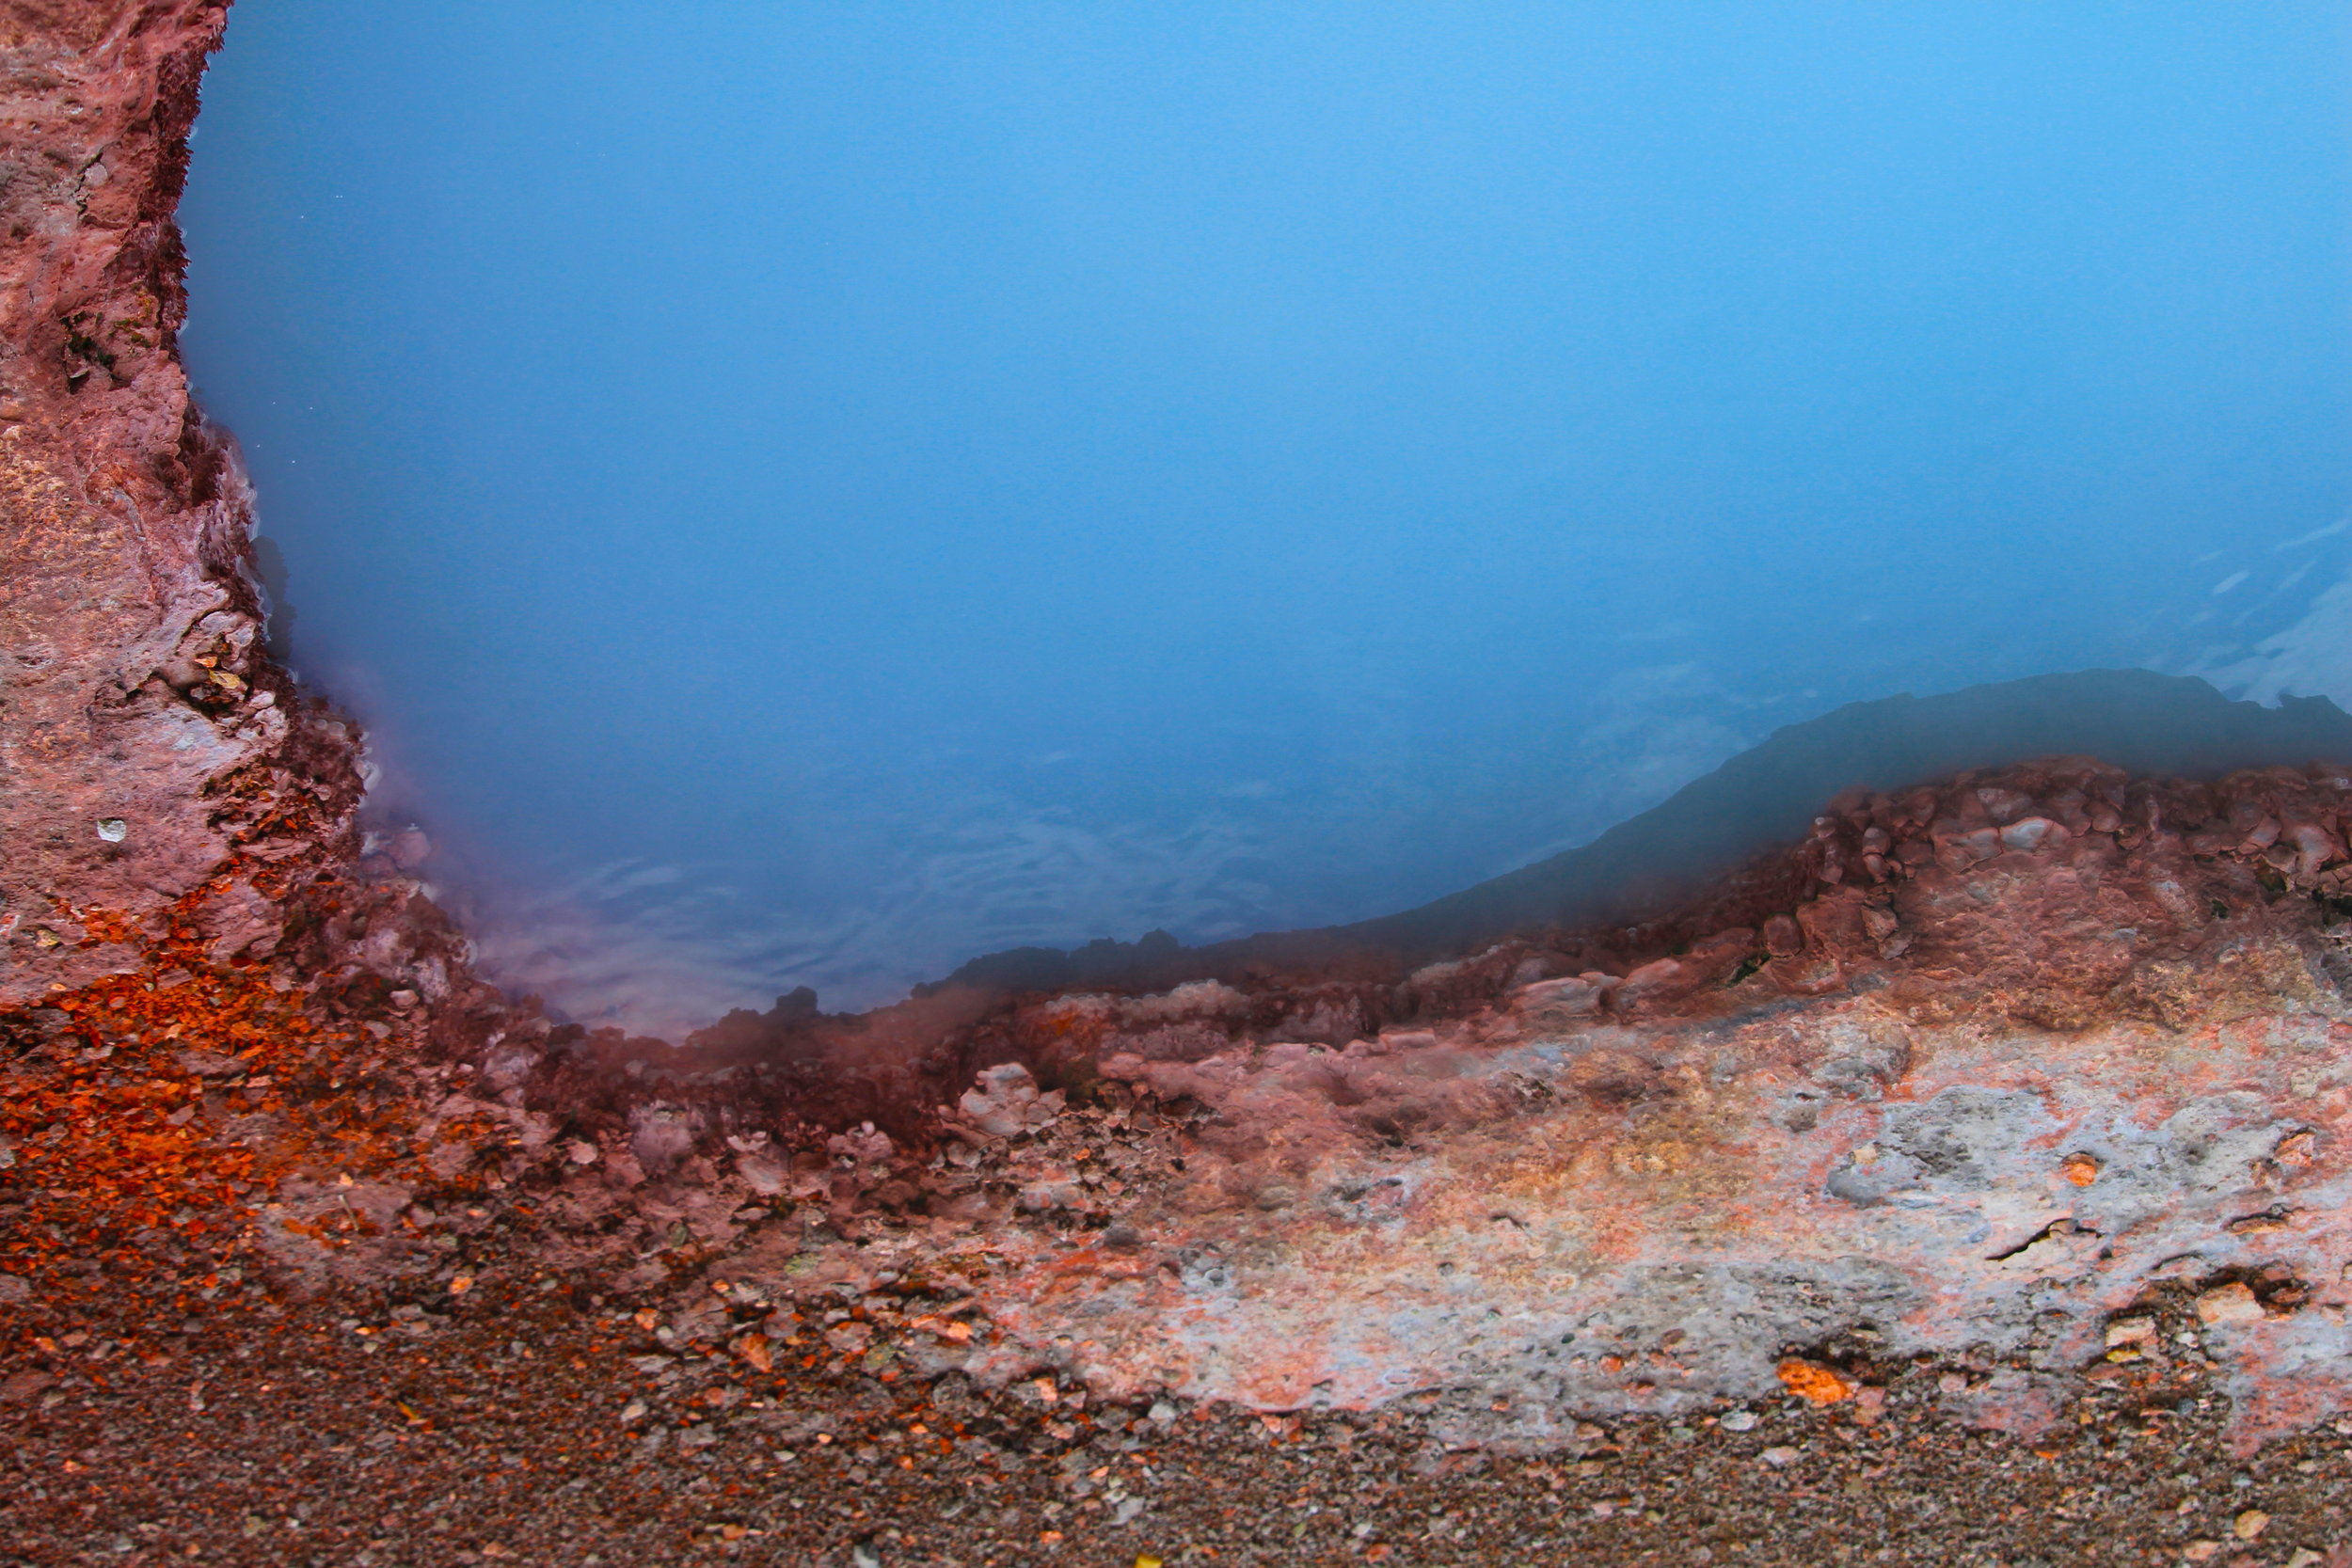 Geothermal Study No. 1, Part 2